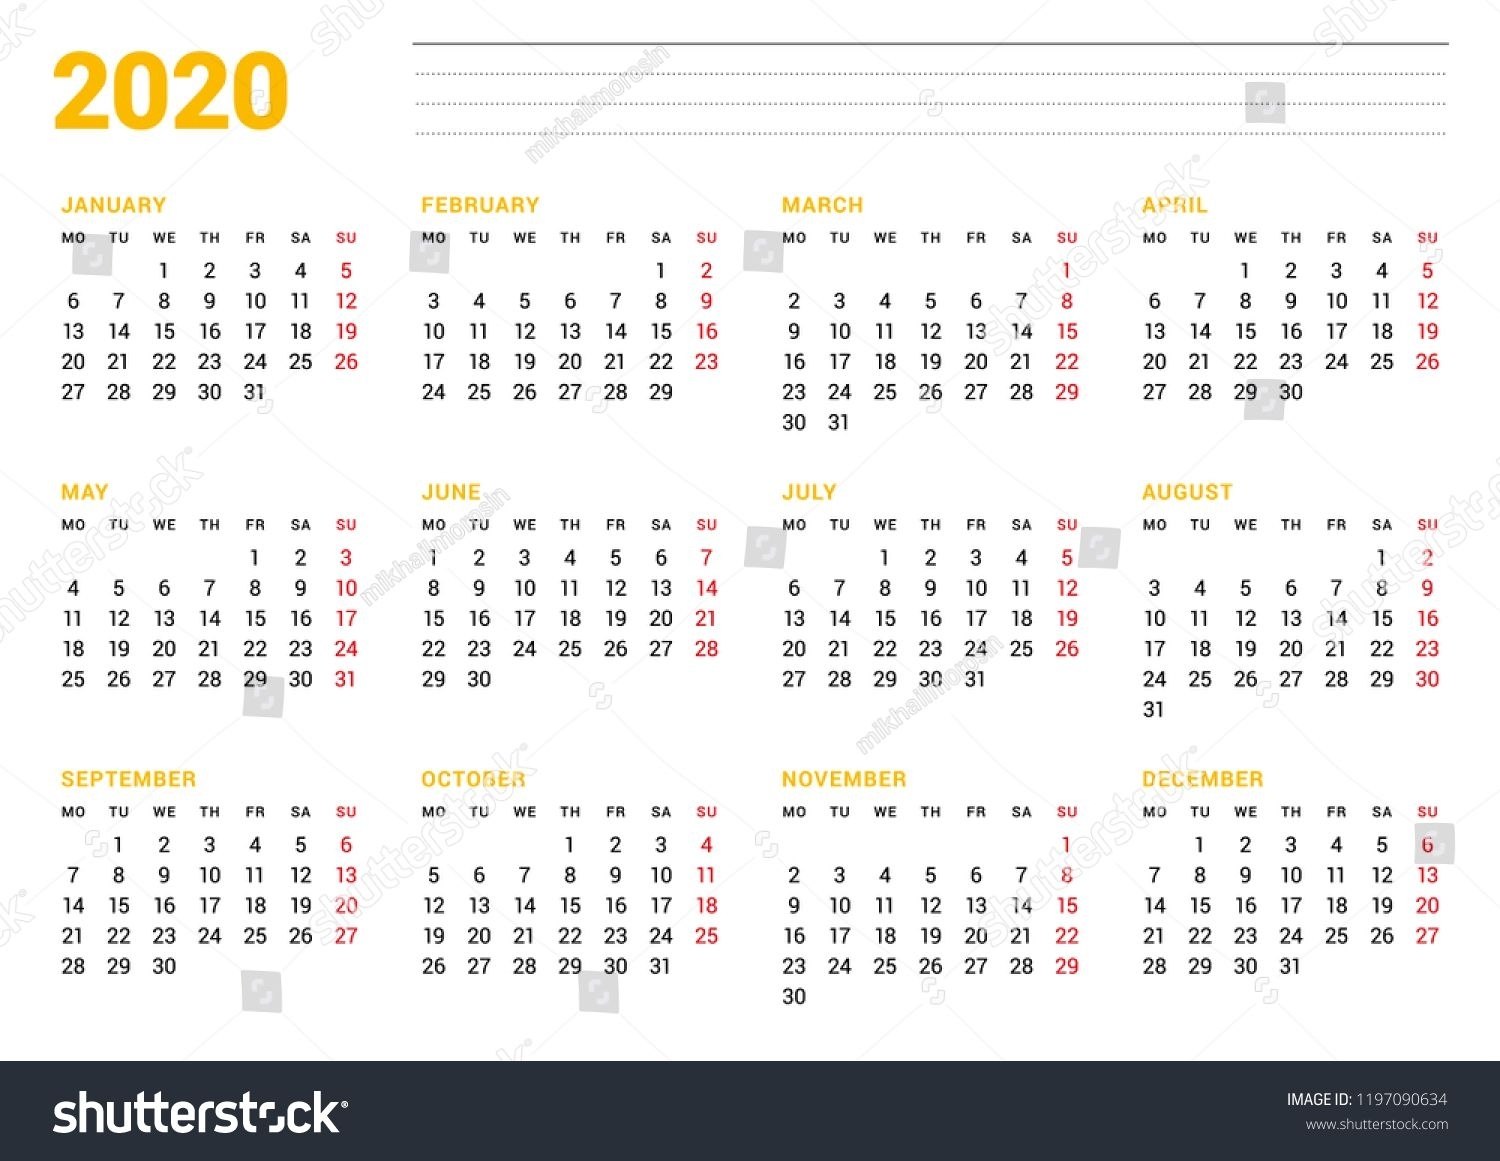 Calendar Template For 2020 Year. Stationery Design. Week in 2020 Calendar With Monday Start Week